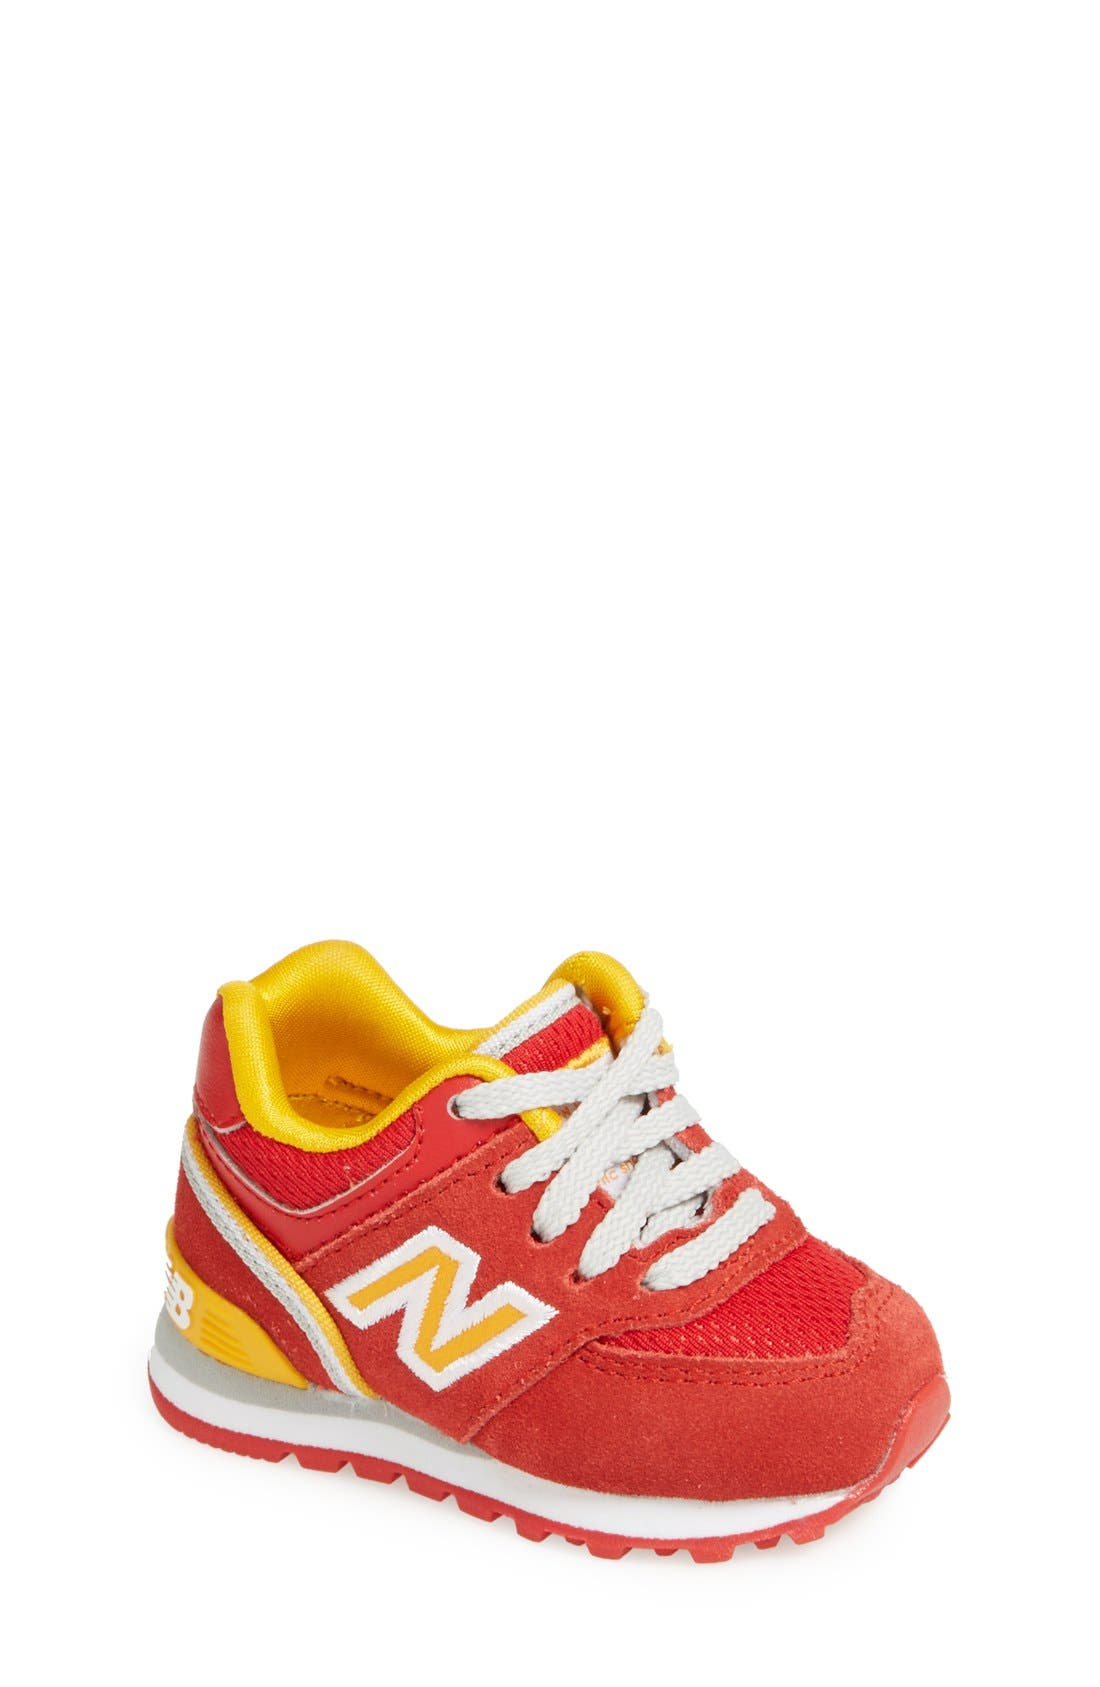 Main Image - New Balance '574 - Stadium' Sneaker (Baby, Walker & Toddler)